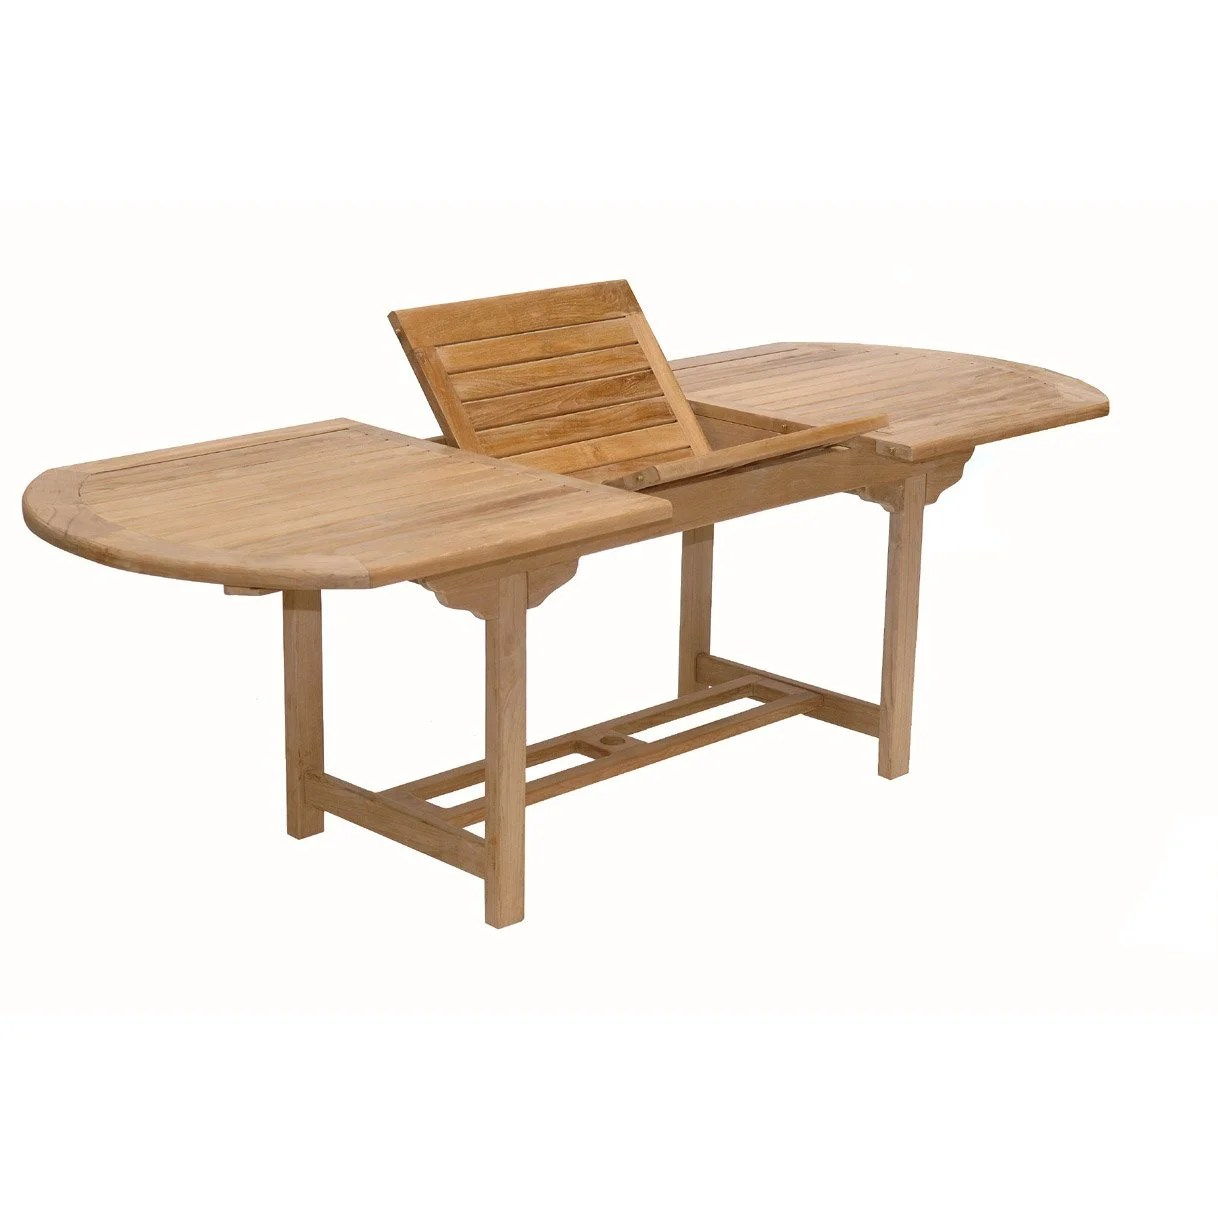 Table Fer Jardin Table De Jardin Azur Ovale Naturel 8 Personnes Leroy Merlin